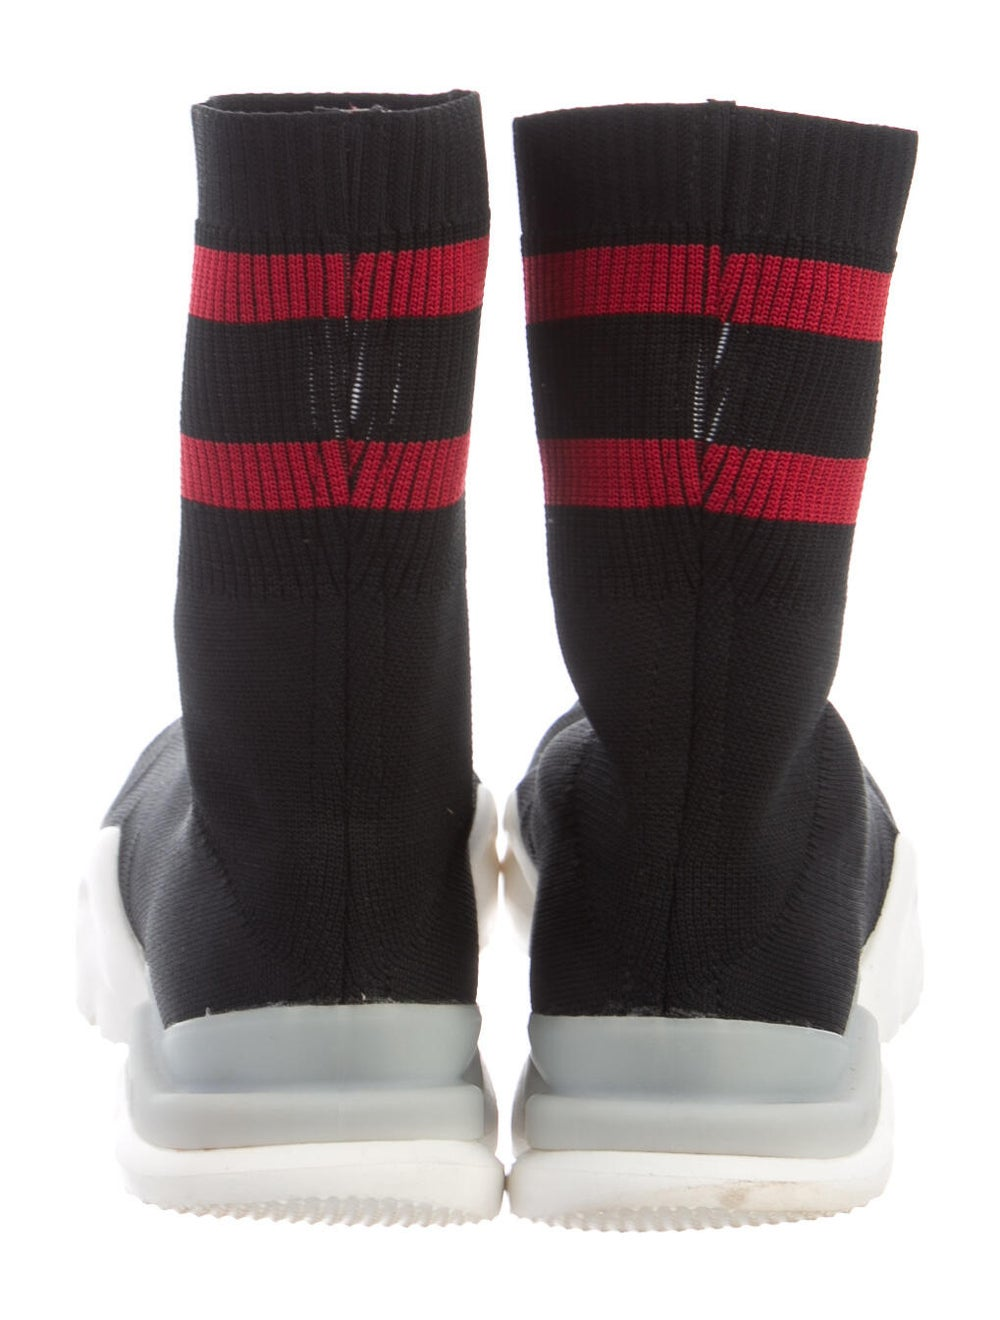 Vetements x Reebok Sock Pump High-Top Sock Sneake… - image 4